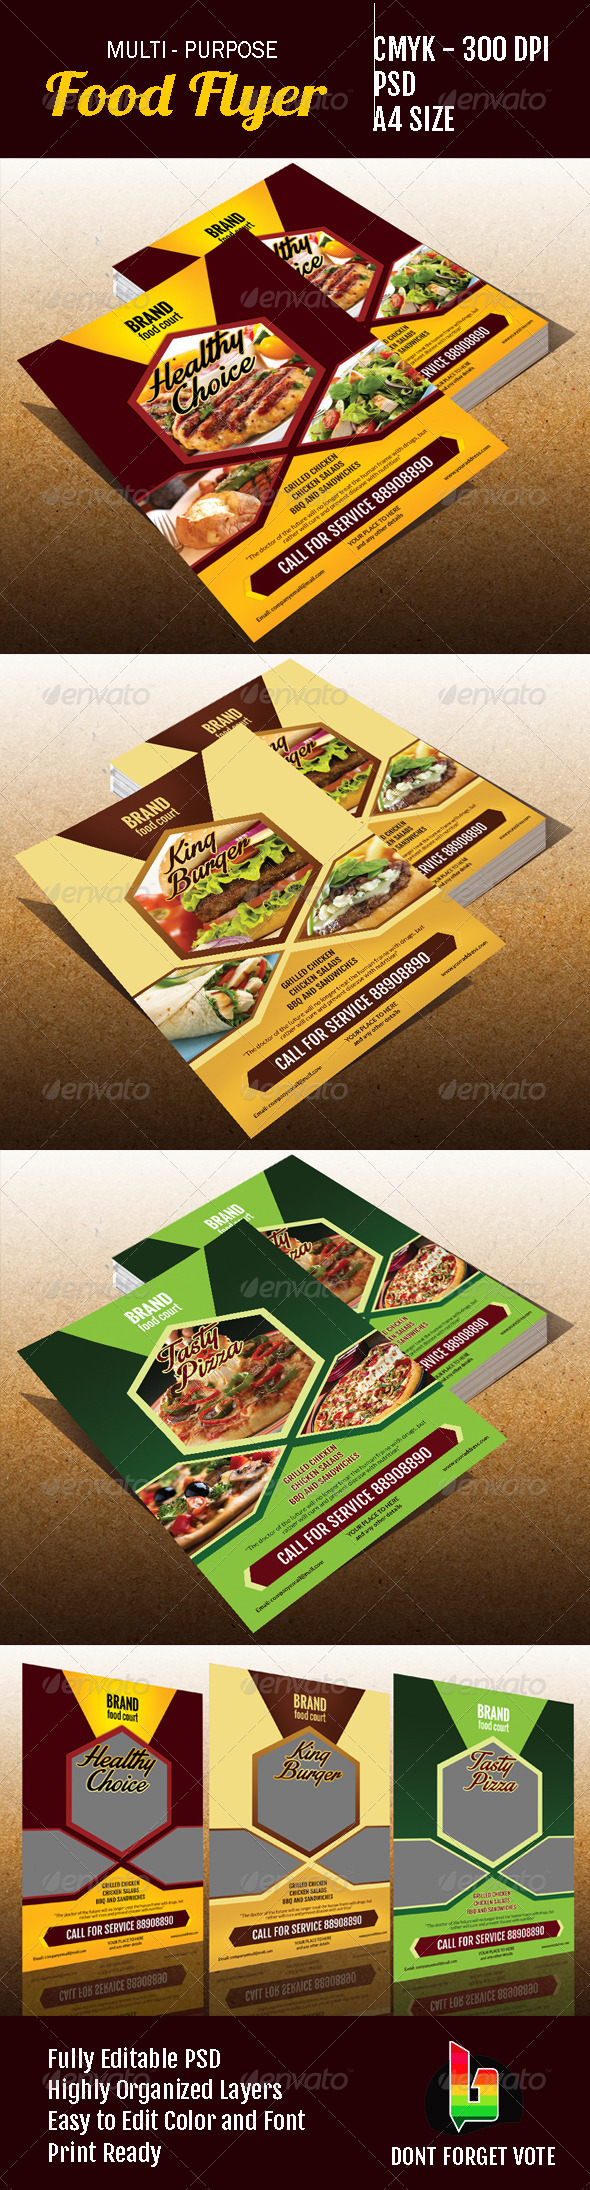 Multipurpose Food Flyer - Restaurant Flyers